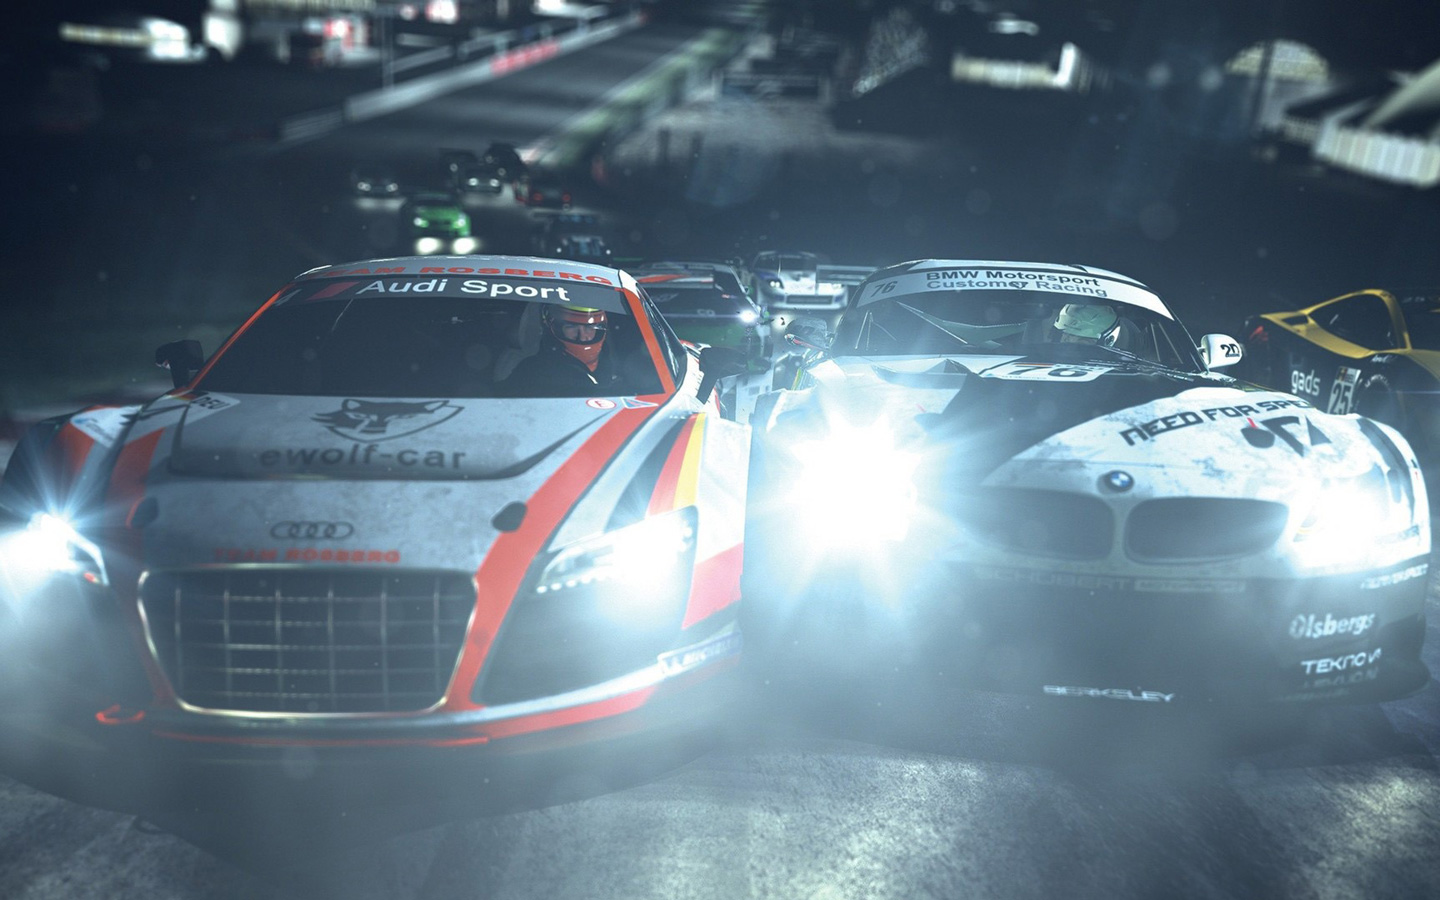 Need for Speed: Shift 2 Unleashed Wallpaper in 1440x900